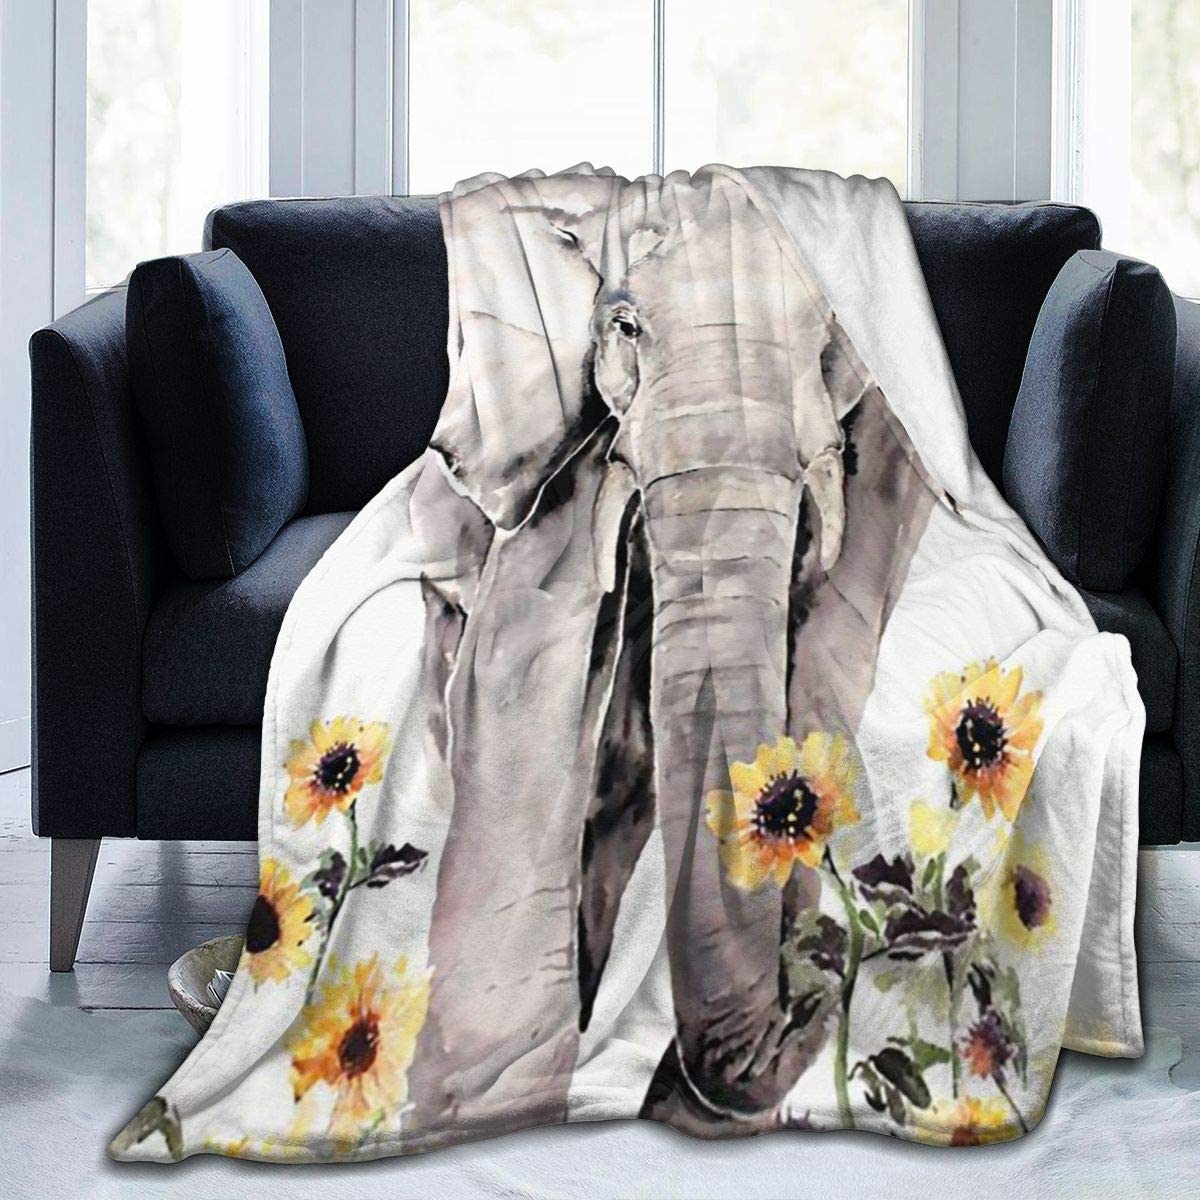 Elephant and Sunflower Throw Blanket Flannel Fleece Twin Travel Blankets Extra Soft Cozy Lightweight Thin Blanket for Spring Summer All Seasons for Indoor Outdoor Use Housewarming Gifts 80x60 in